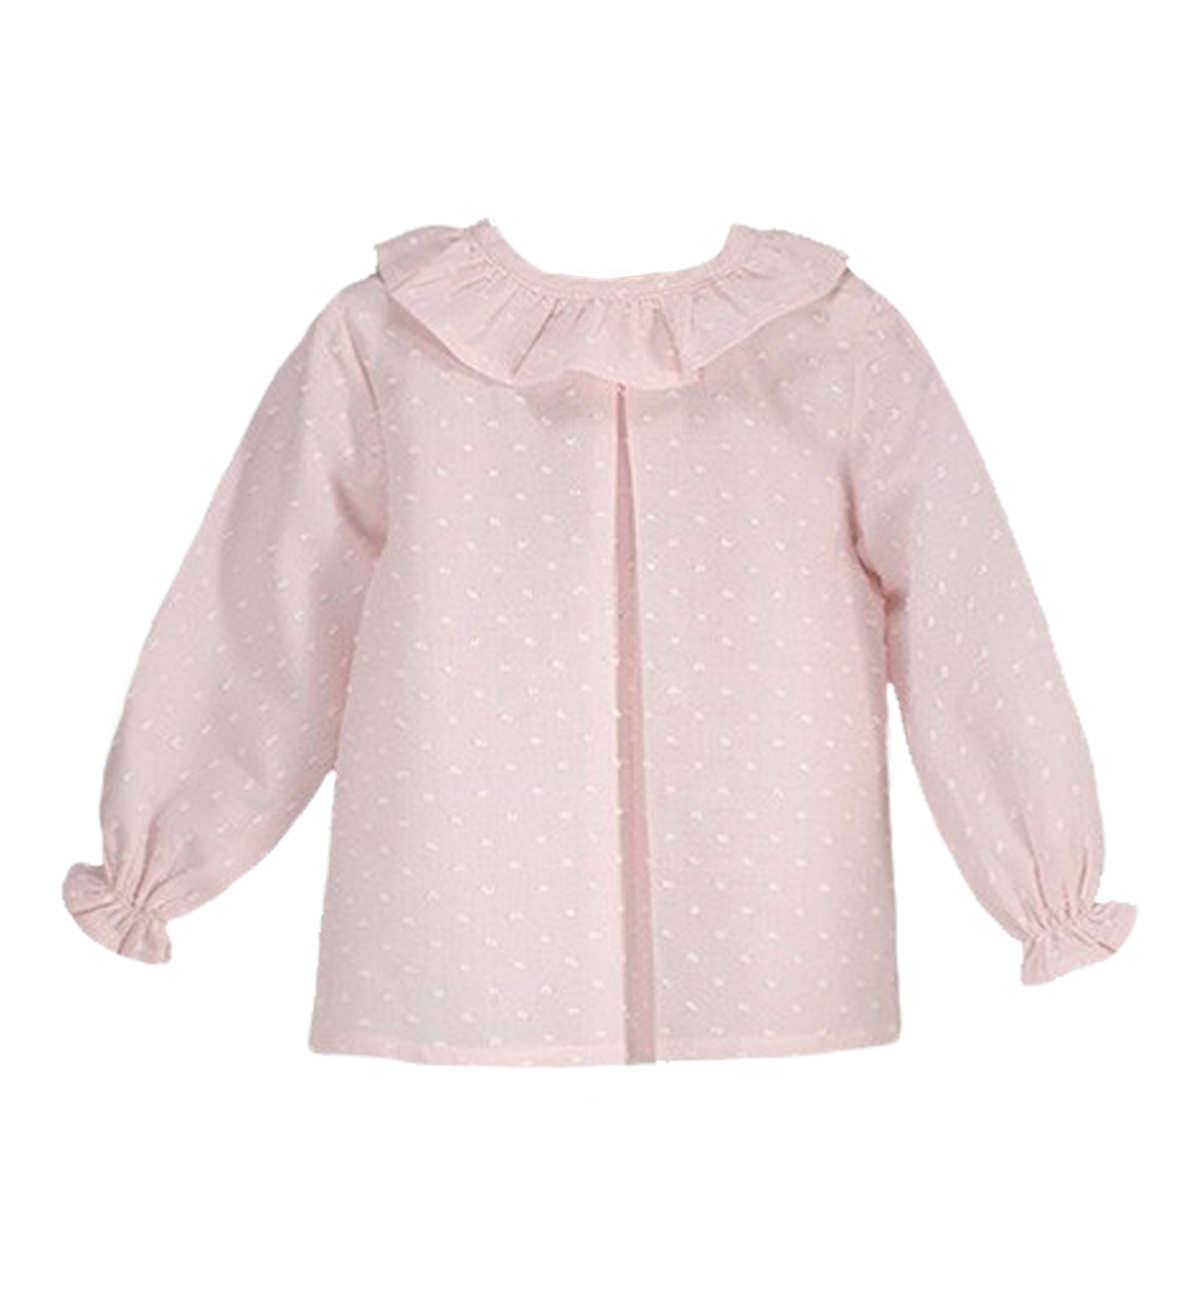 Spanish baby clothes | baby Blouse | Pale pink blouse |babymaC  - 1